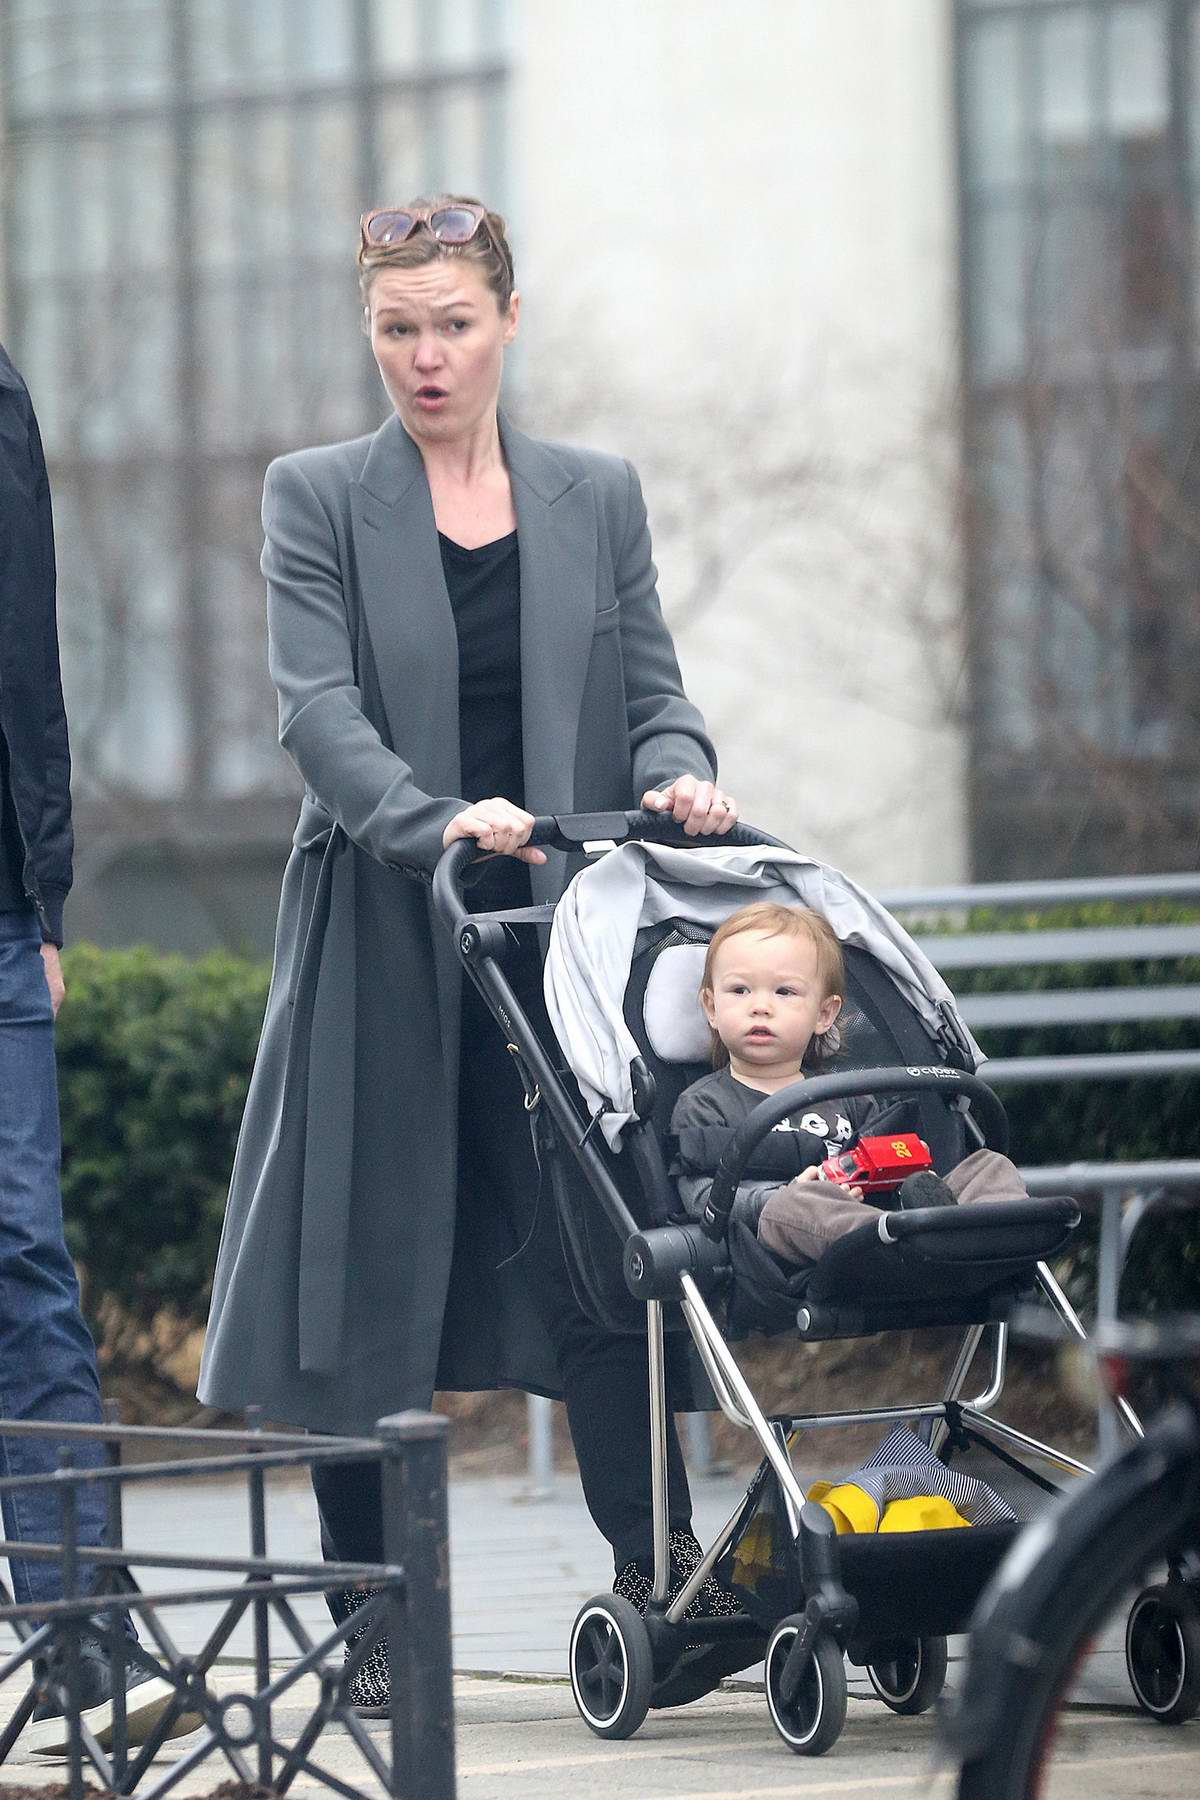 Julia Stiles Takes Her Son For A Stroll With A Friend In